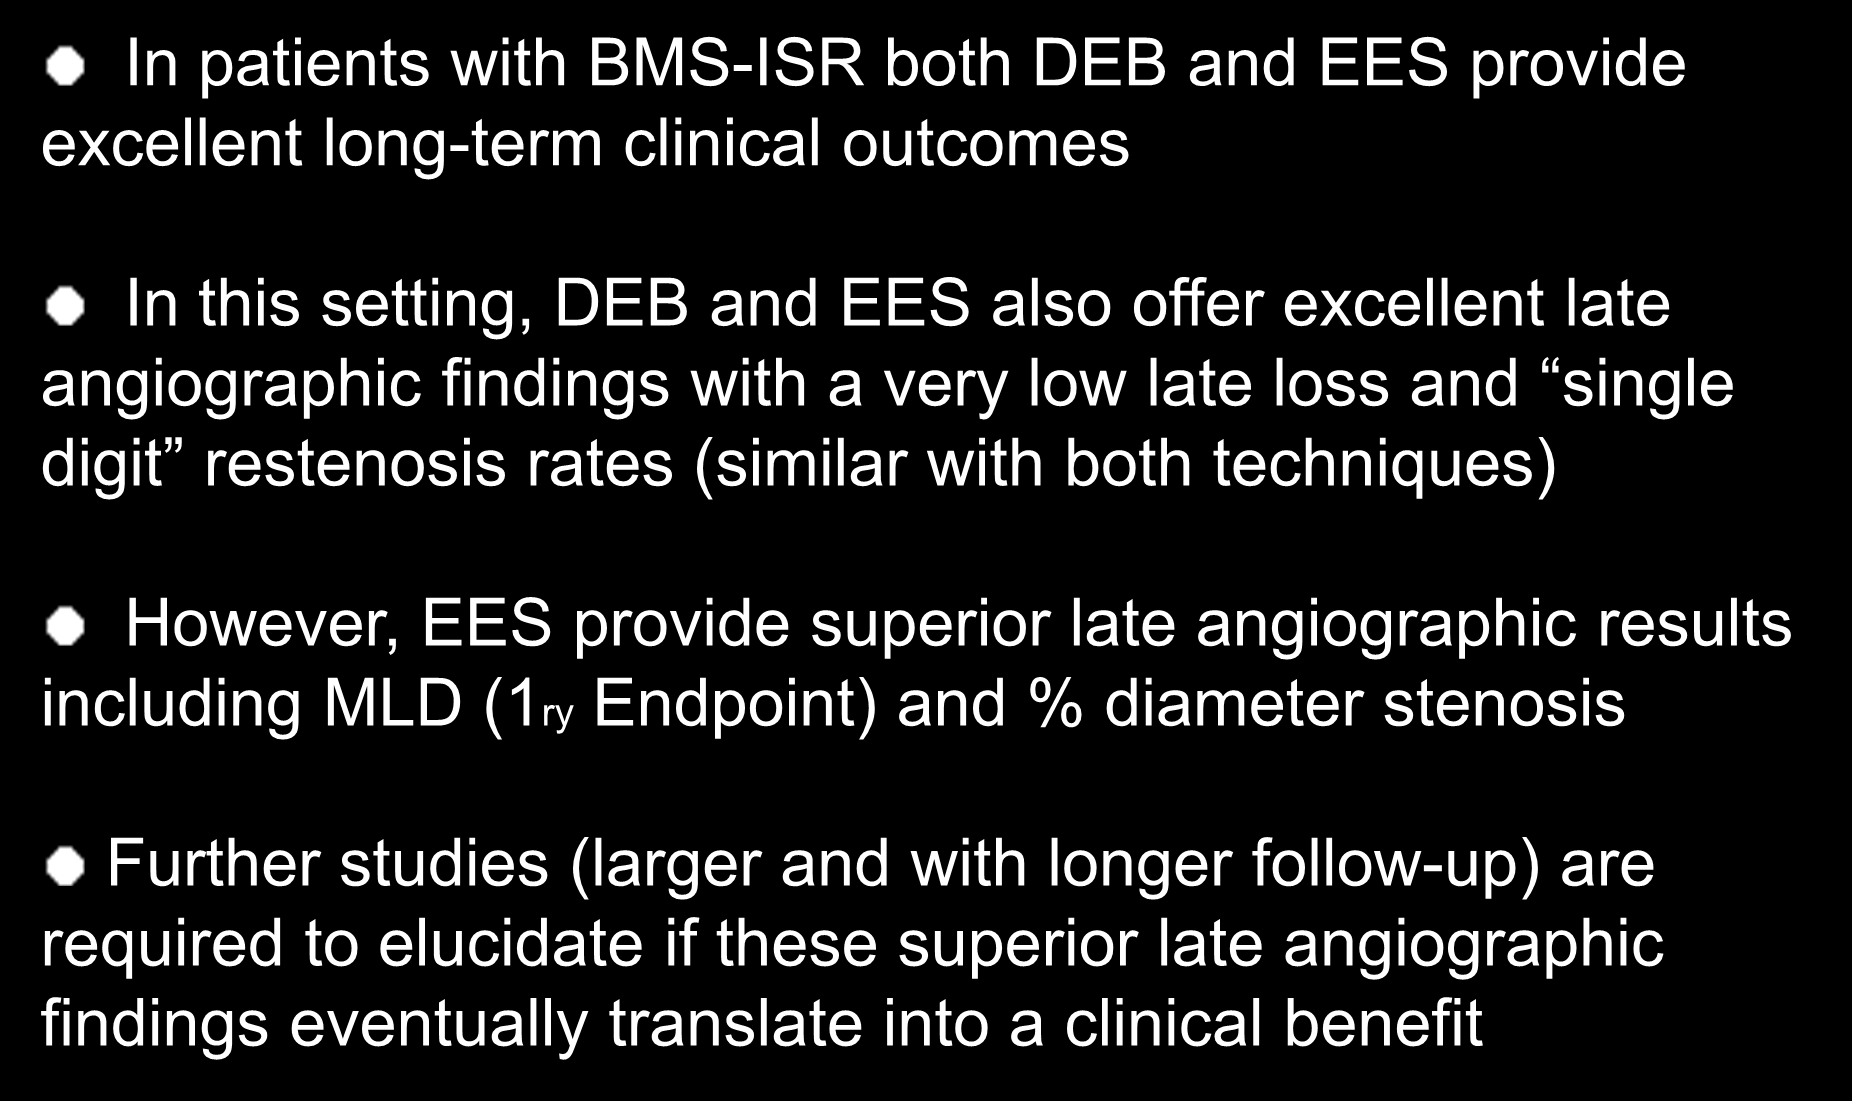 Conclusions: In patients with BMS-ISR both DEB and EES provide excellent long-term clinical outcomes In this setting, DEB and EES also offer excellent late angiographic findings with a very low late